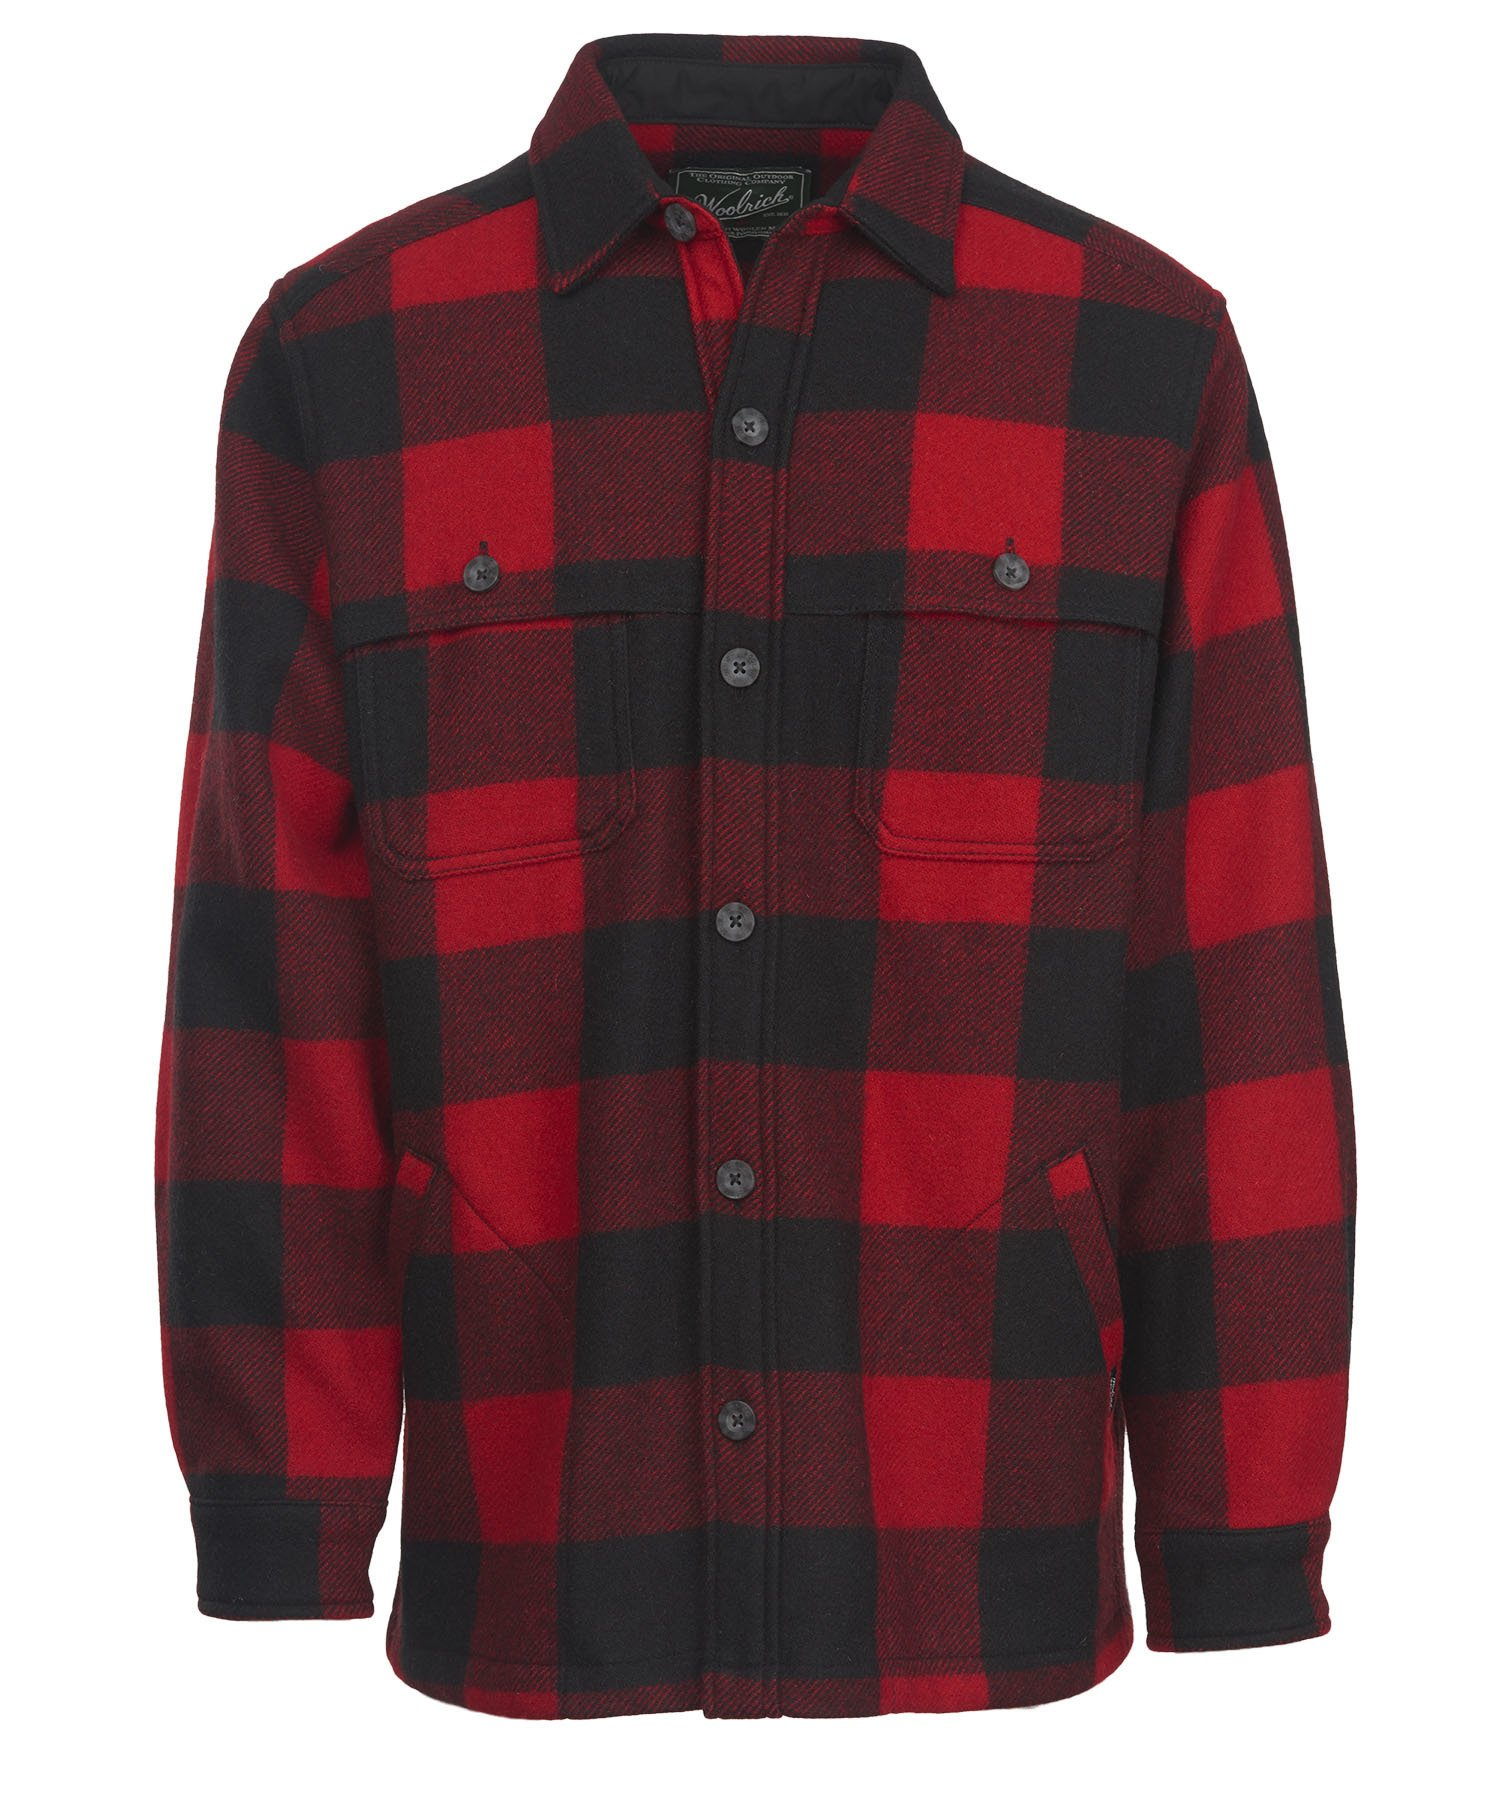 Woolrich Men's Wool Stag Shirt Jacket, Red/Black, Large